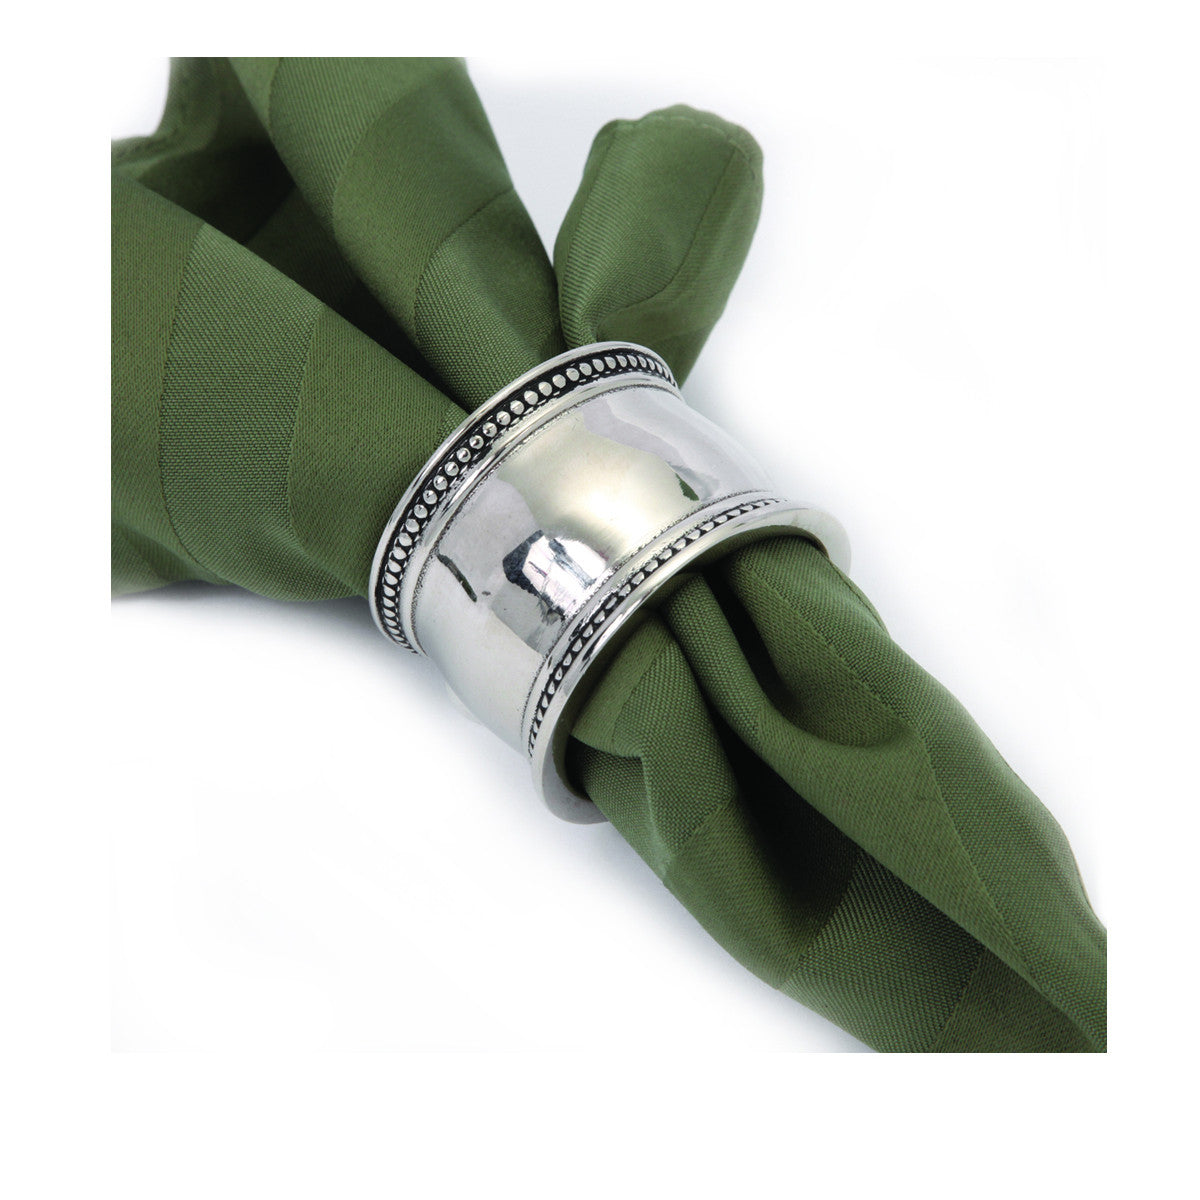 Table Accents Pearl Bead Napkin Ring, 1pc.